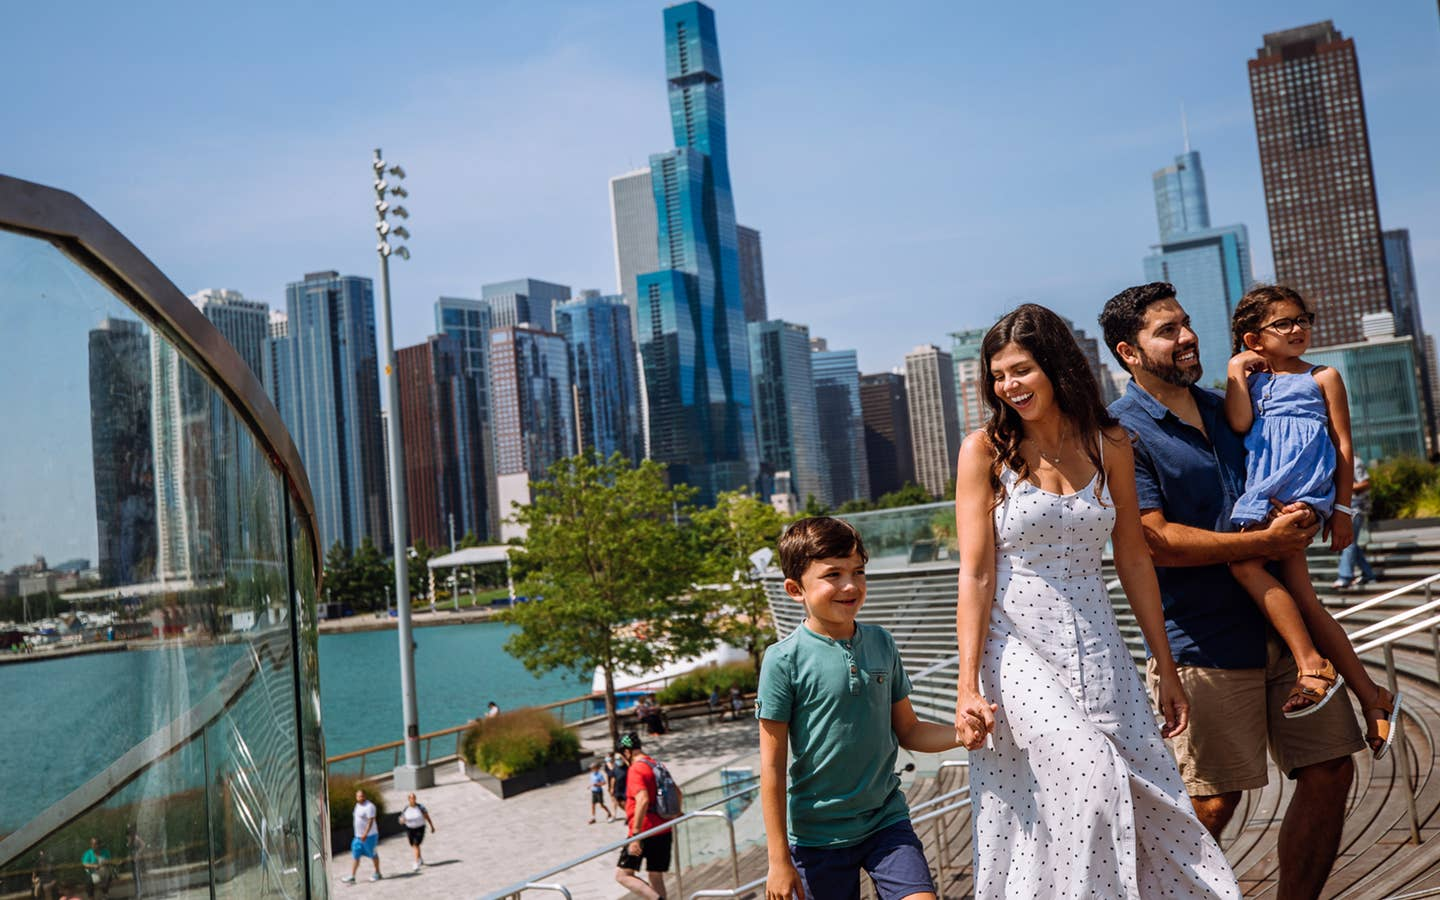 A woman, a man, a young boy and girl walk near the Chicago Skyline.